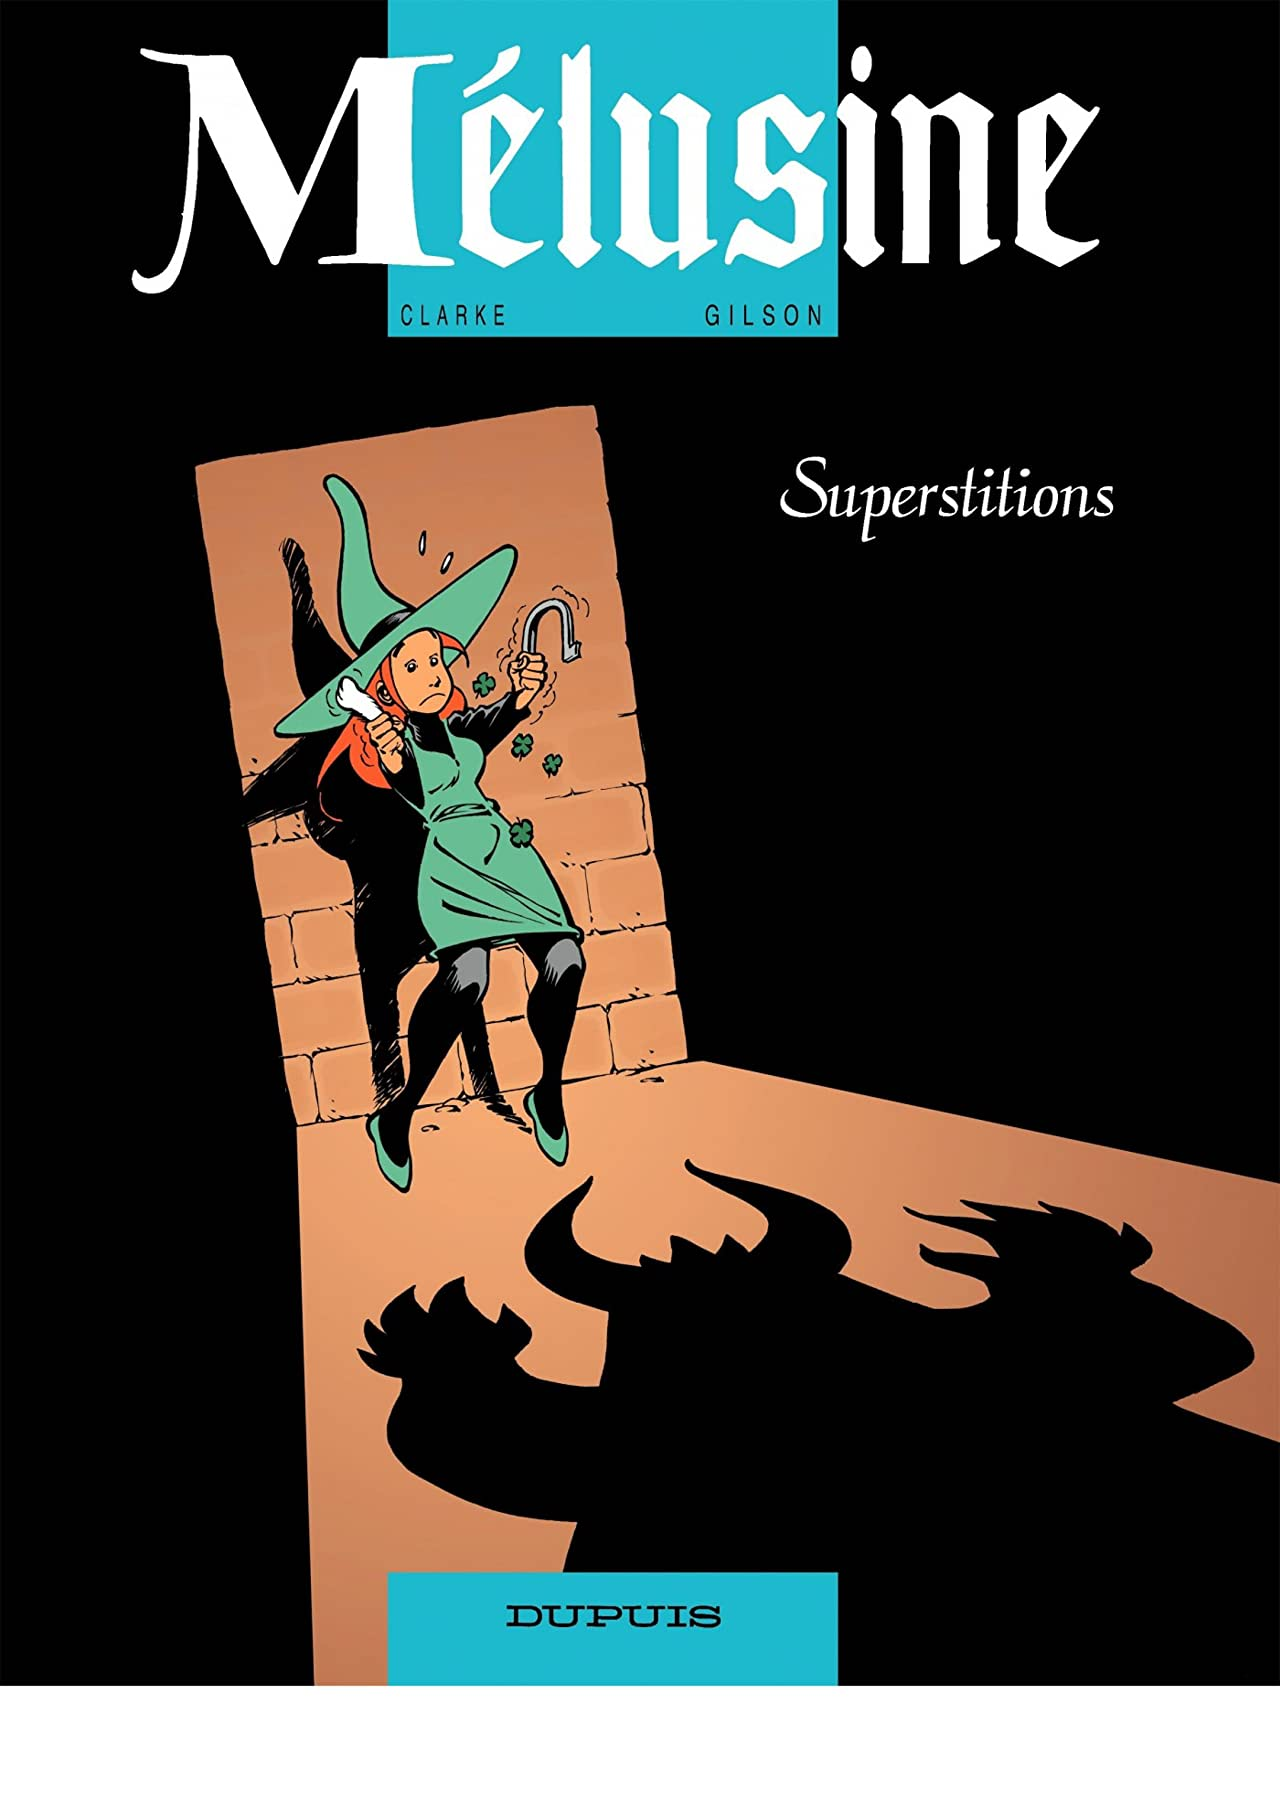 Mélusine Vol. 13: Superstitions